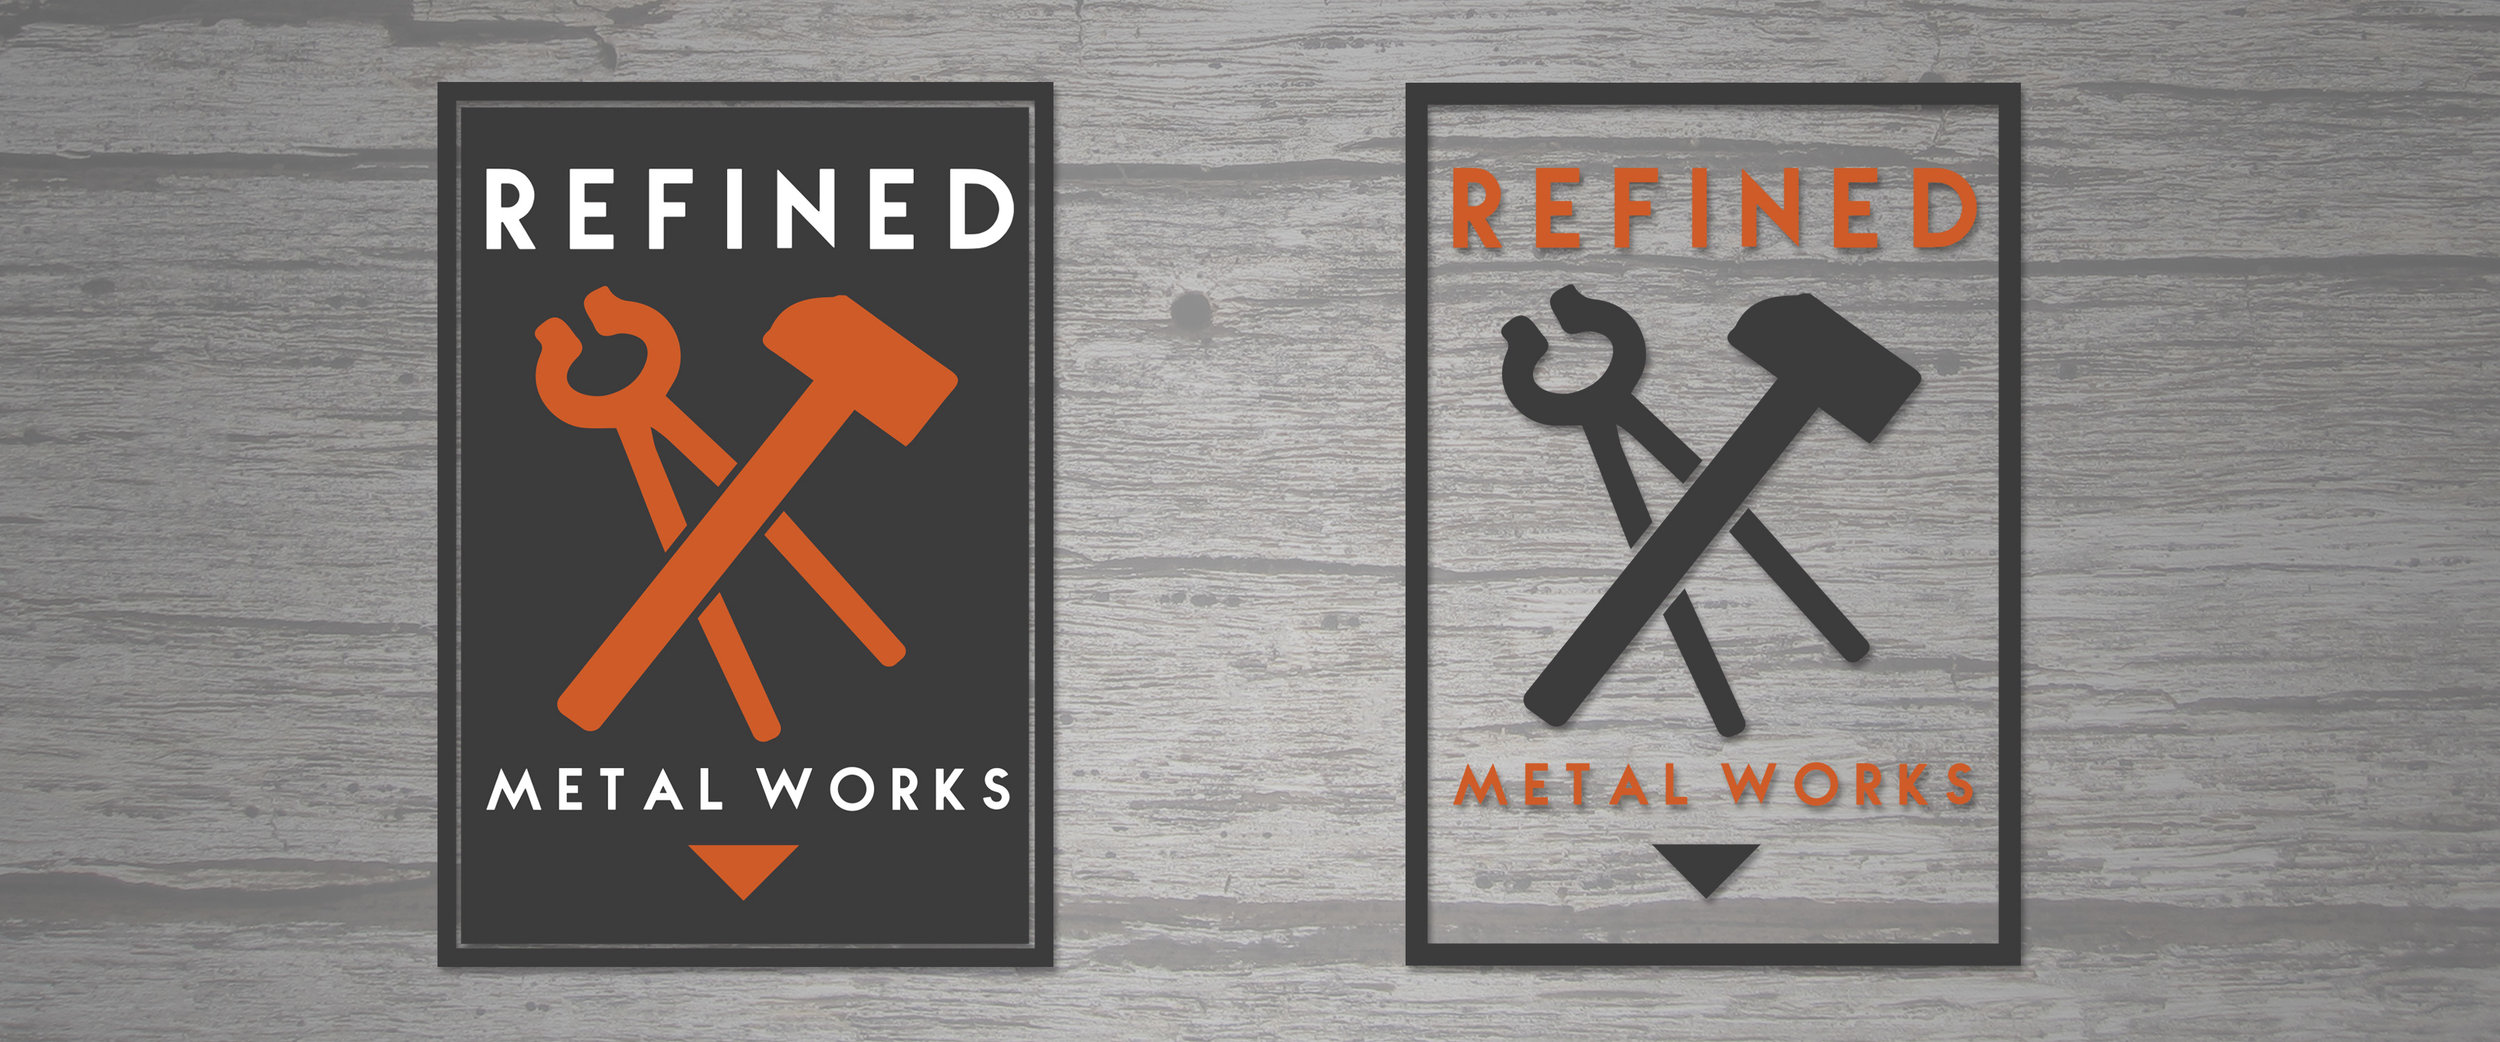 Wears My Shirt - Custom Products Anything - Corporate Refined Metal Works.jpg